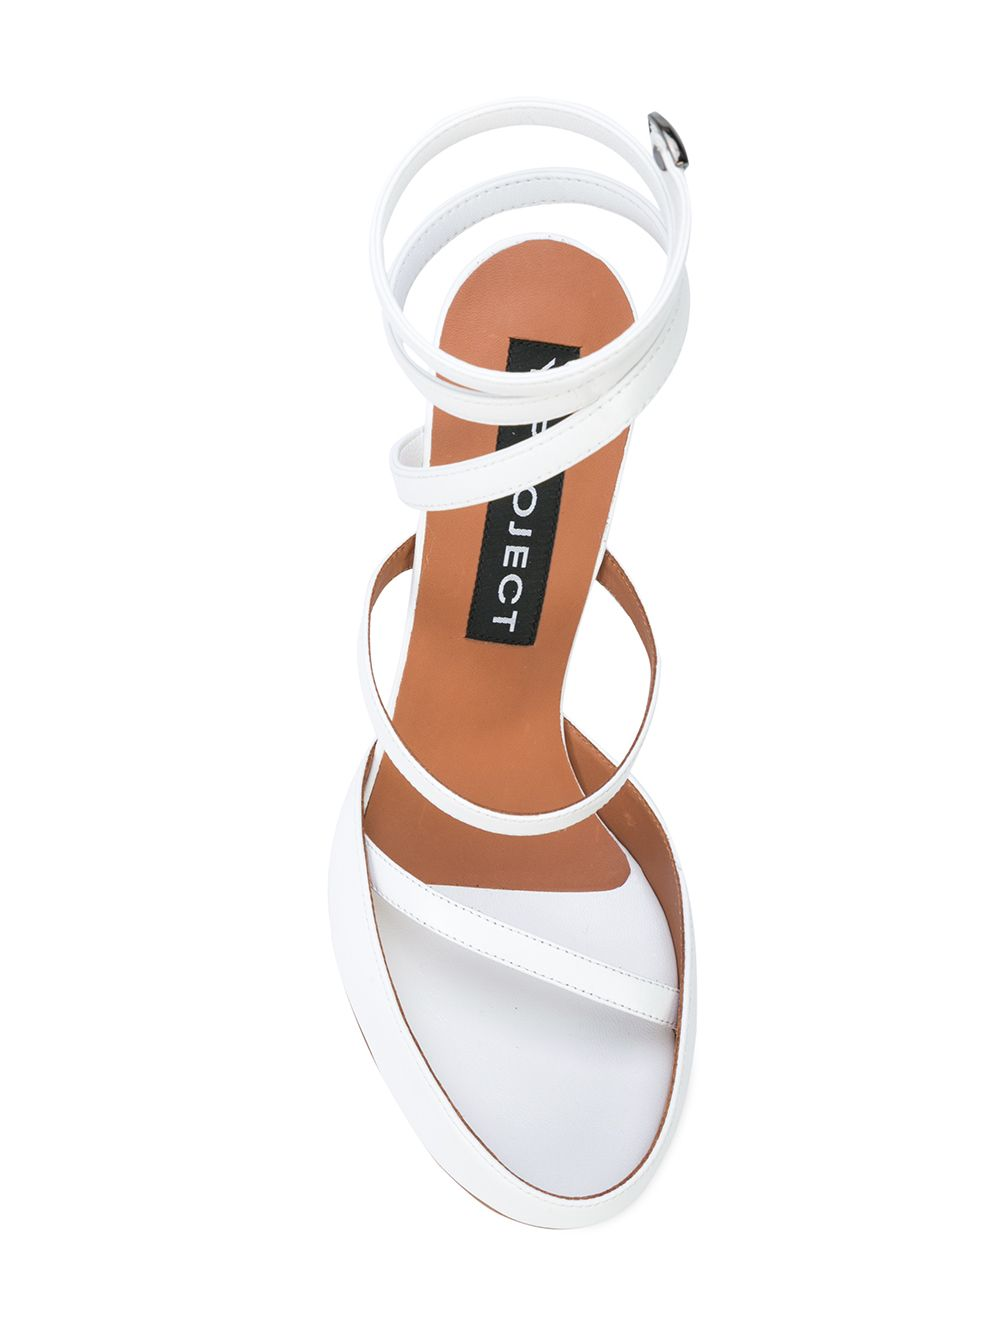 Y/Project White Spiral Sandals - 4